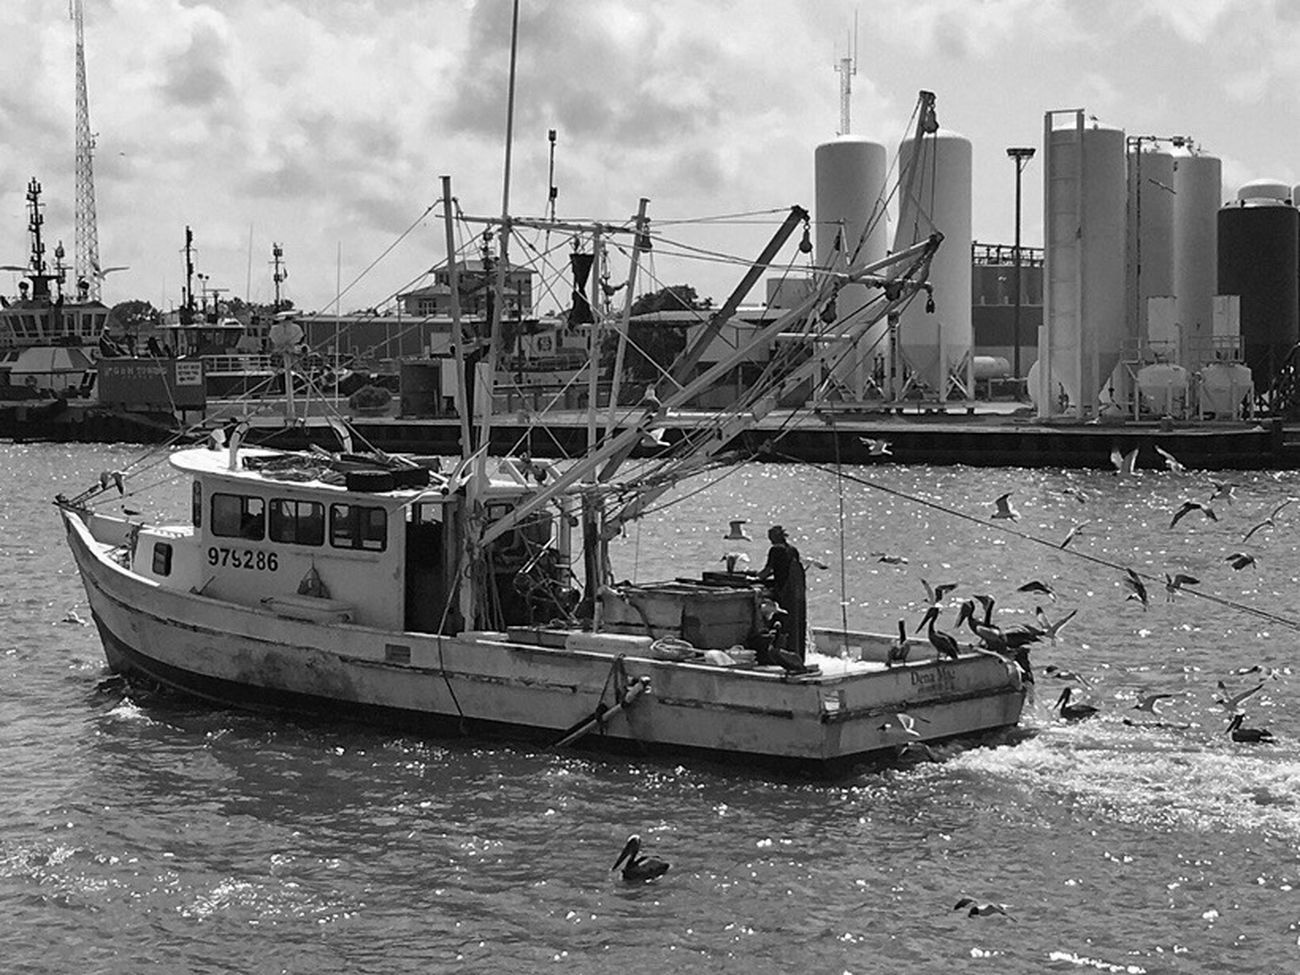 Shrimpers Boat Galveston Texas Work Boat Shrimping Blackandwhite